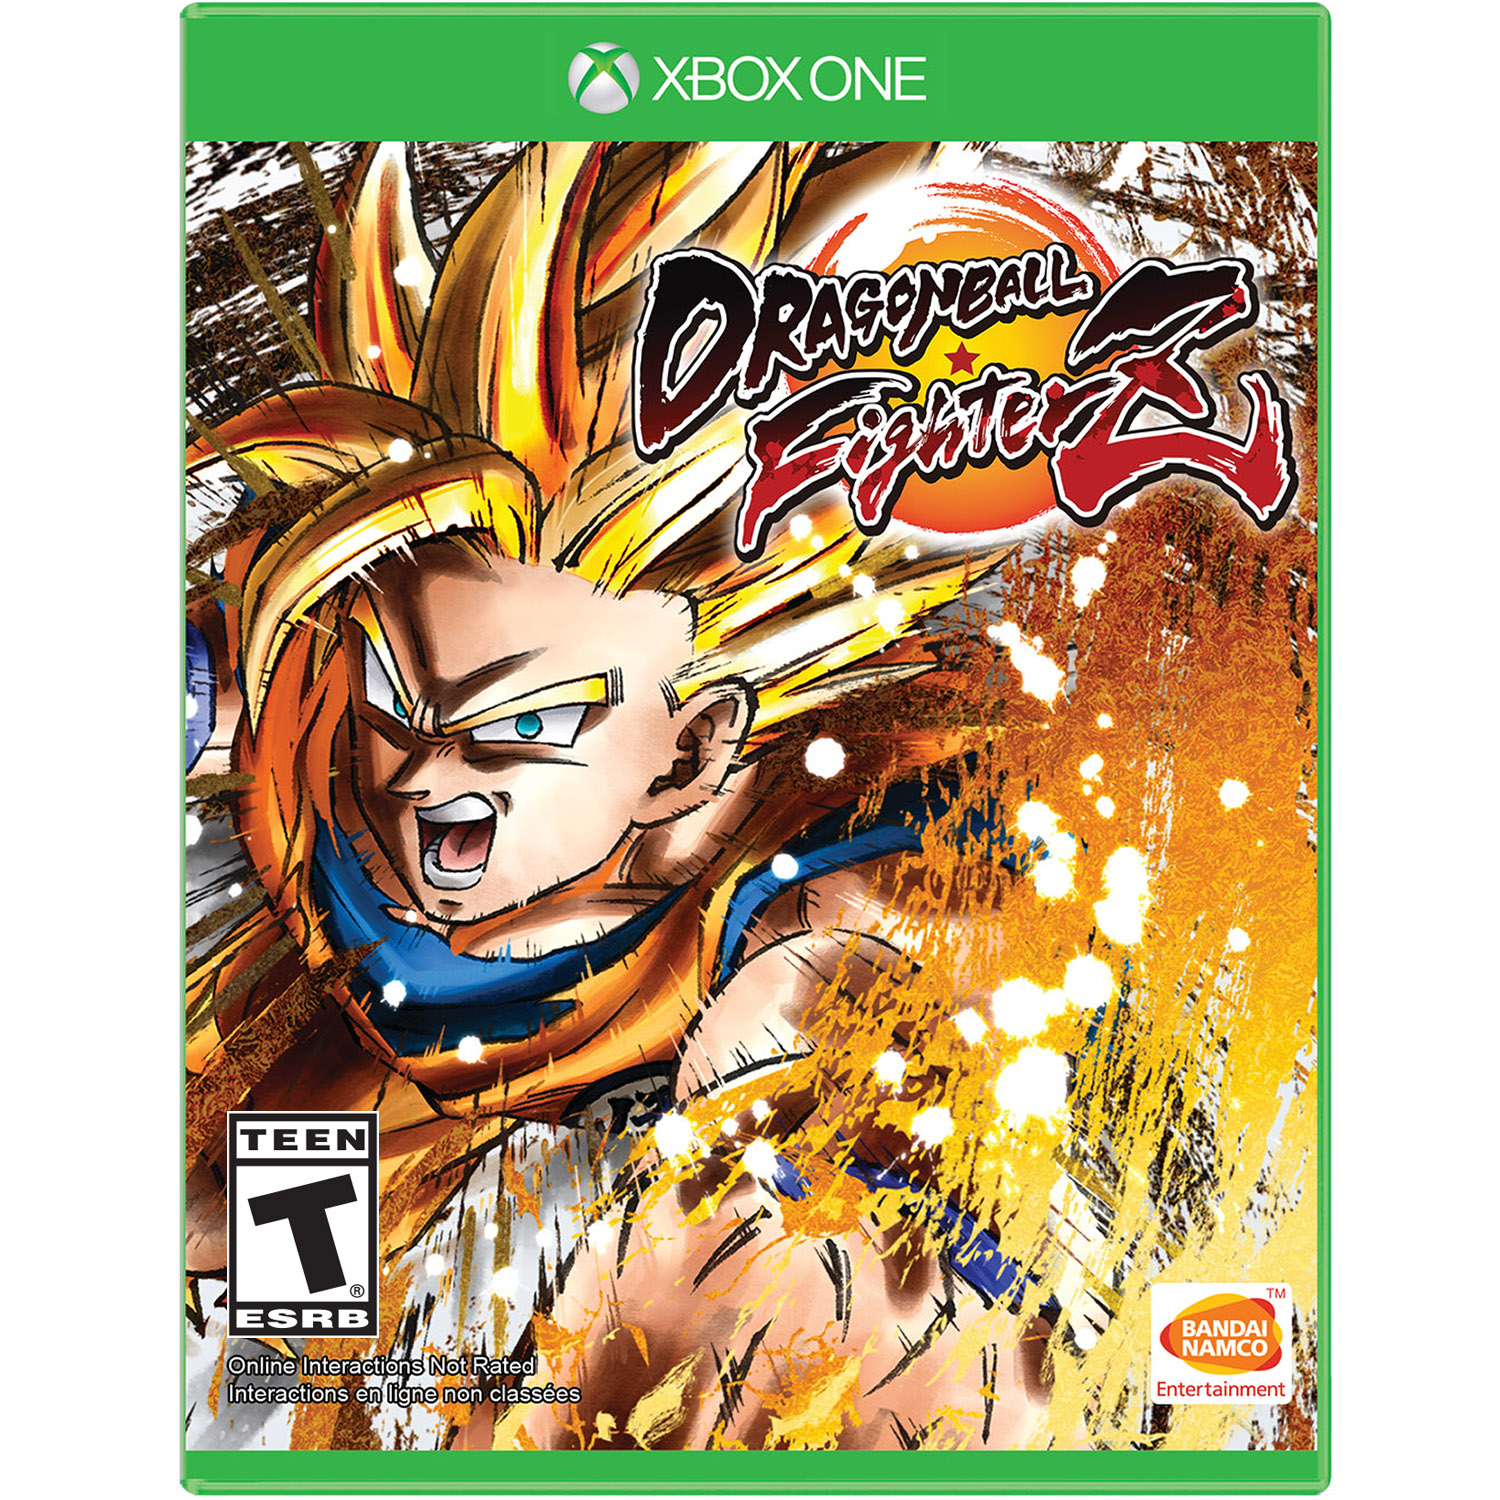 Dragon Ball FighterZ, Bandai Namco, Xbox One, REFURBISHED/PREOWNED